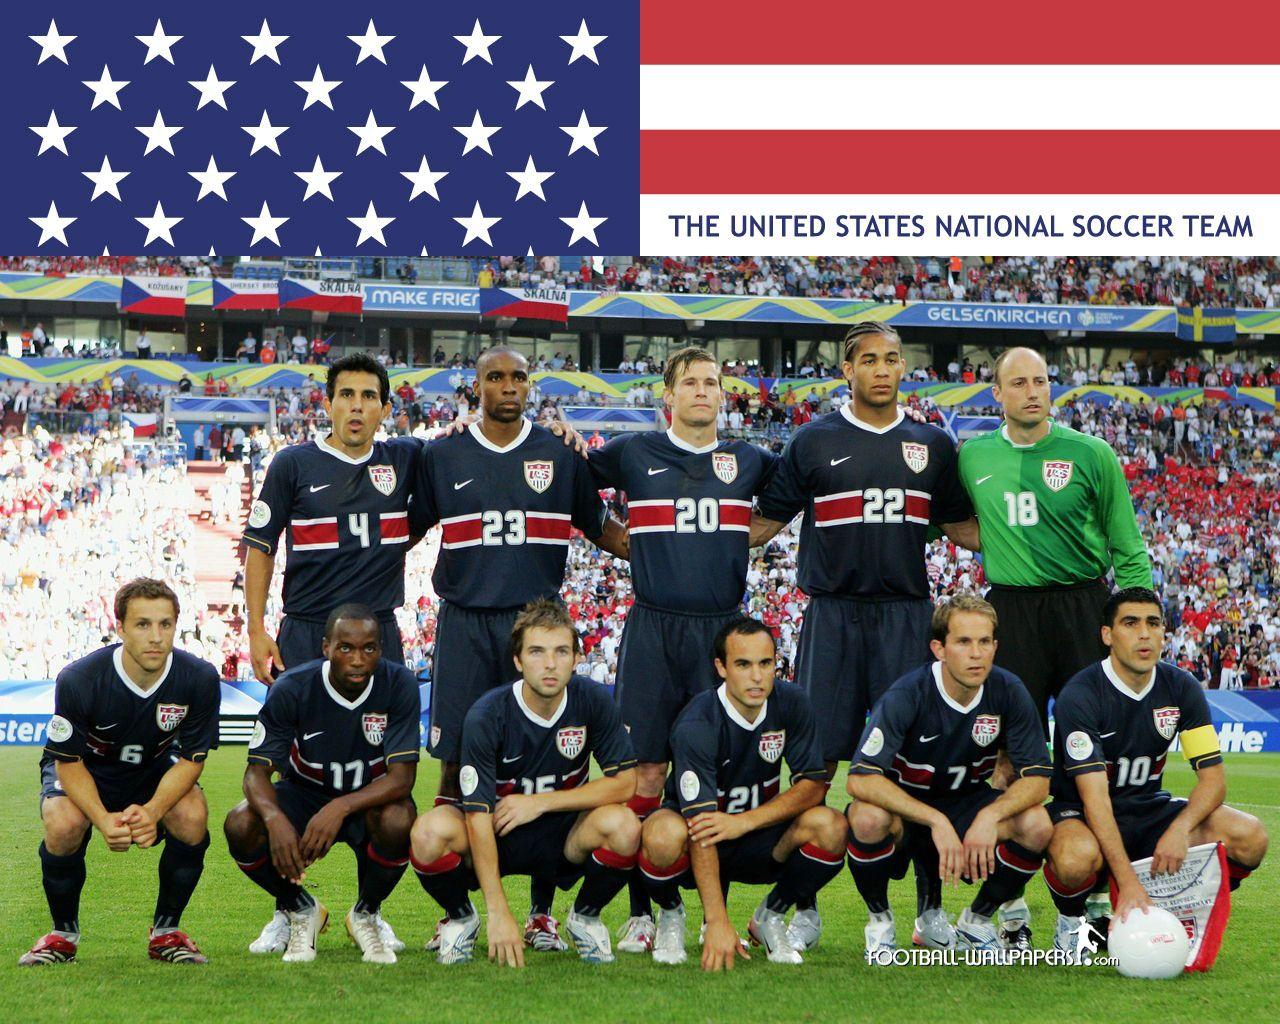 United States National Soccer Team Zoom Background 6